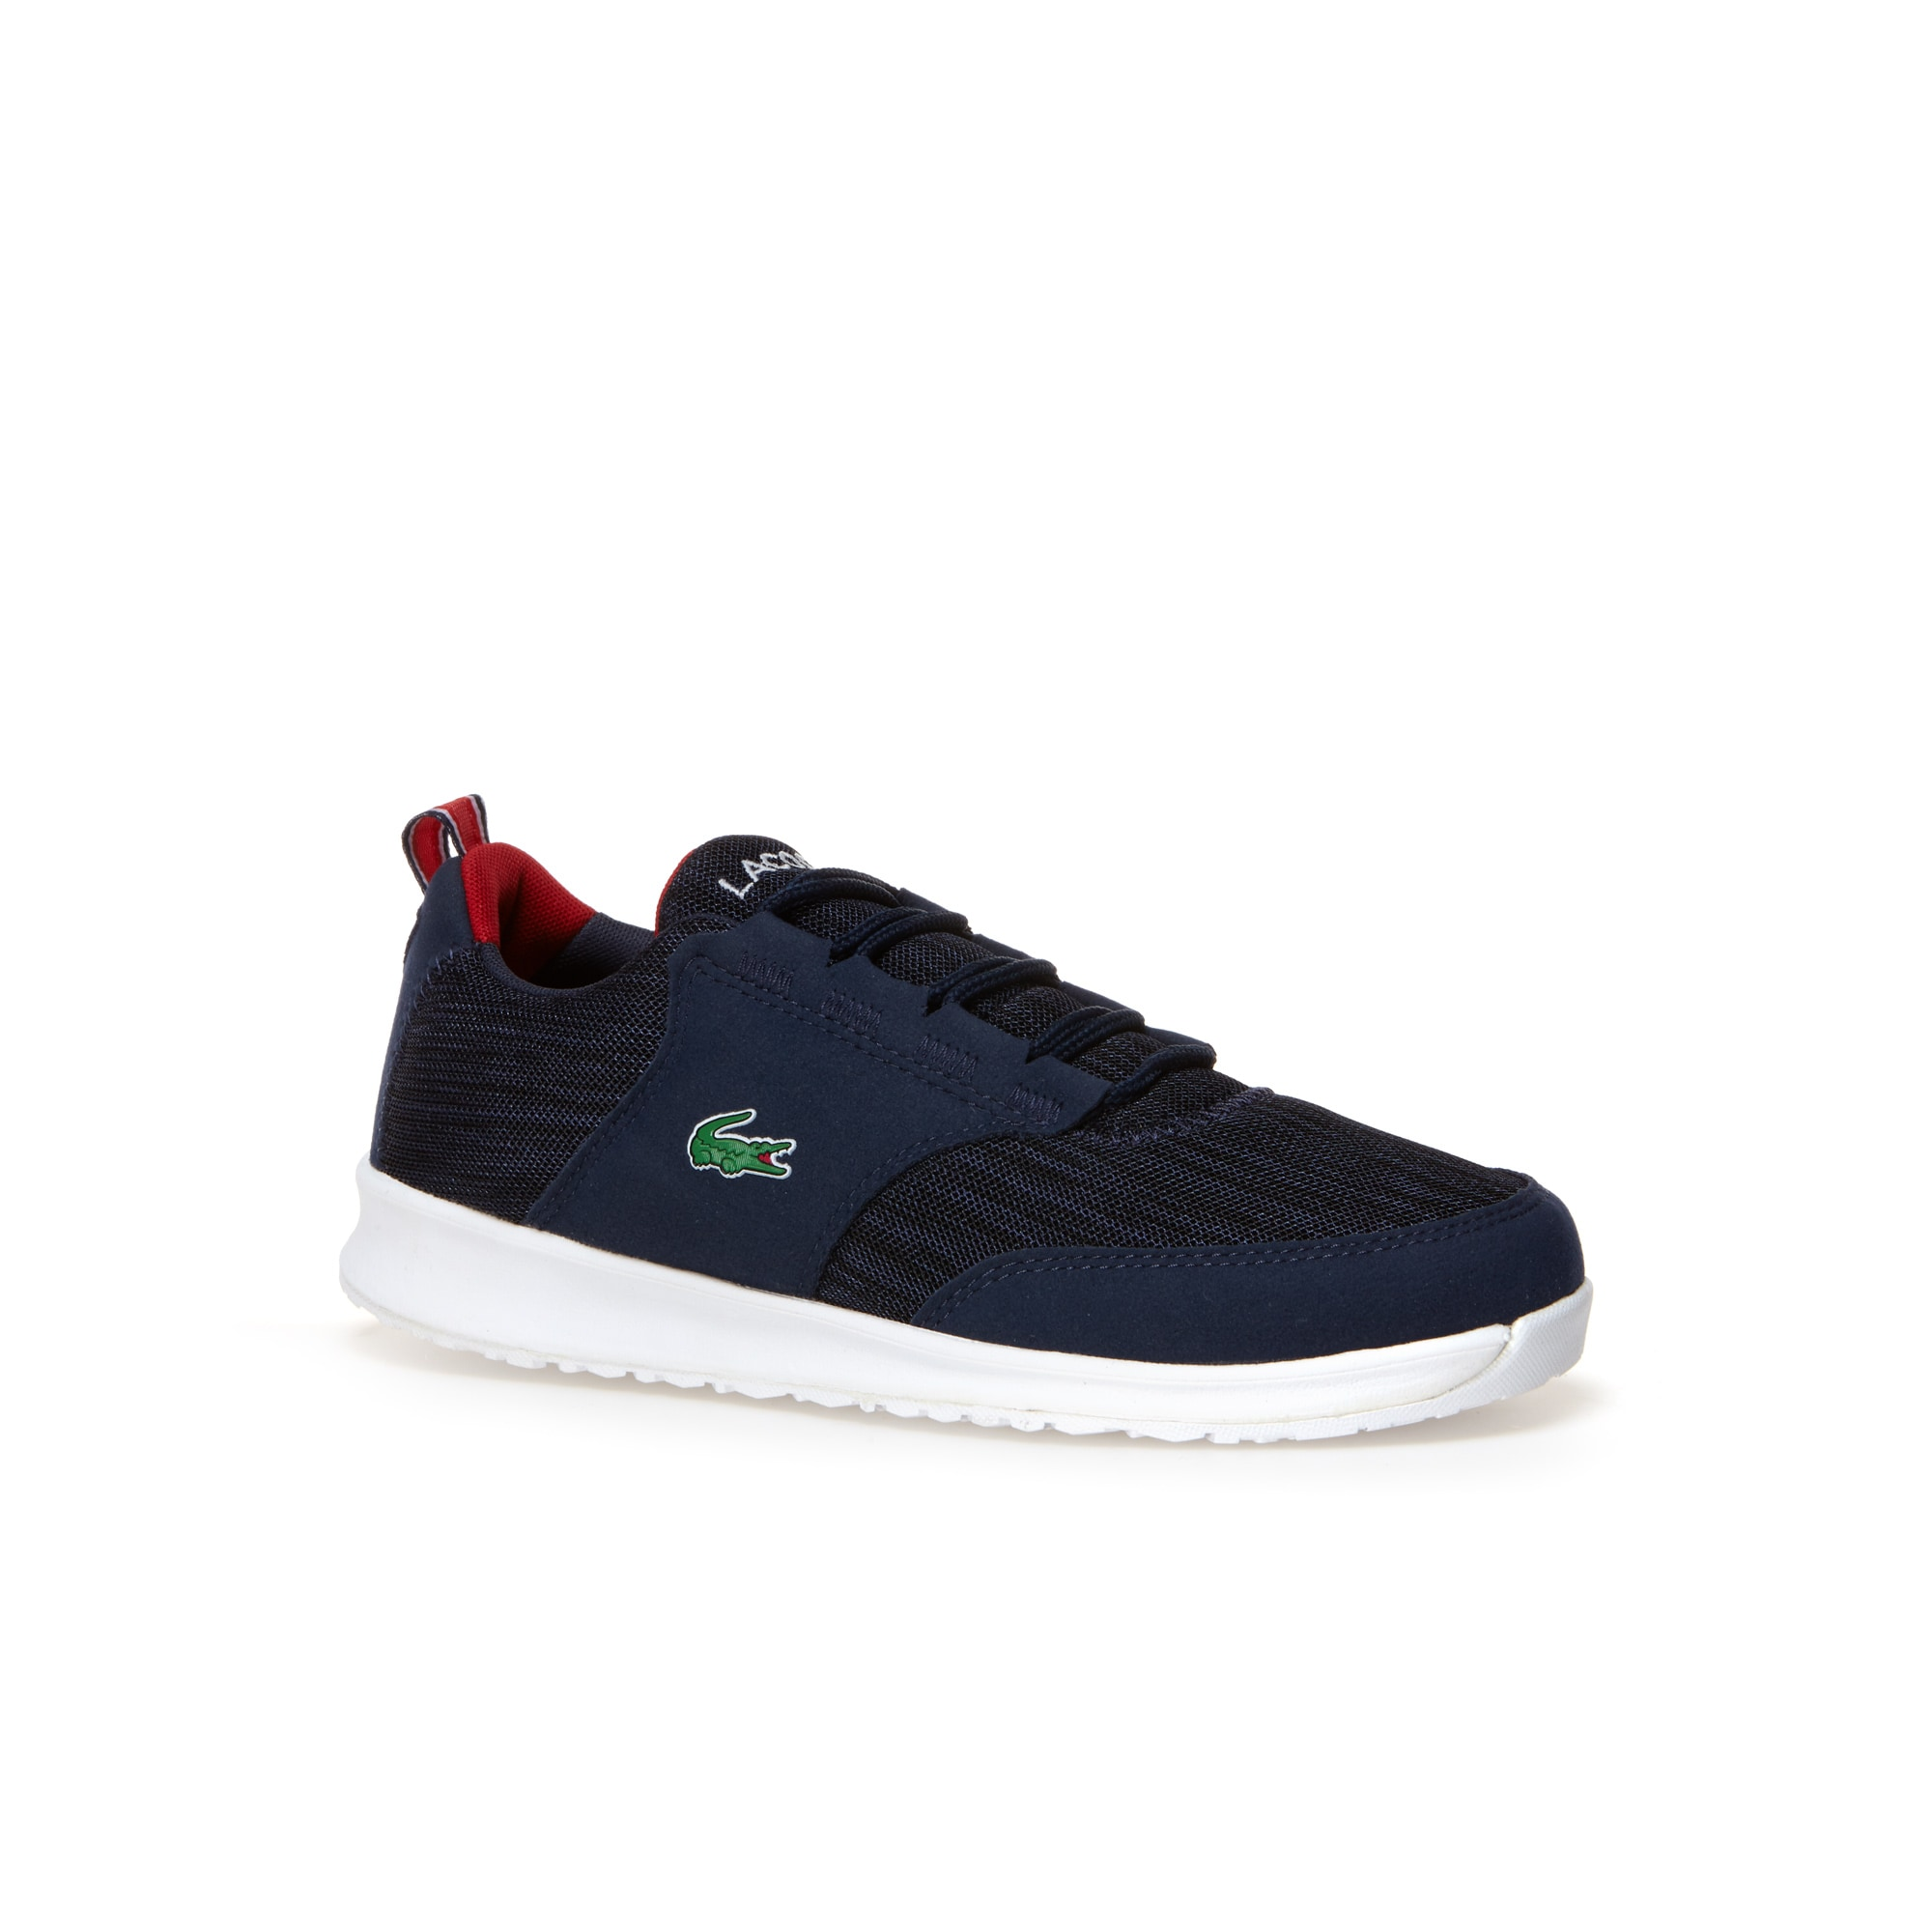 Teen-Sneakers L.IGHT aus Stoff